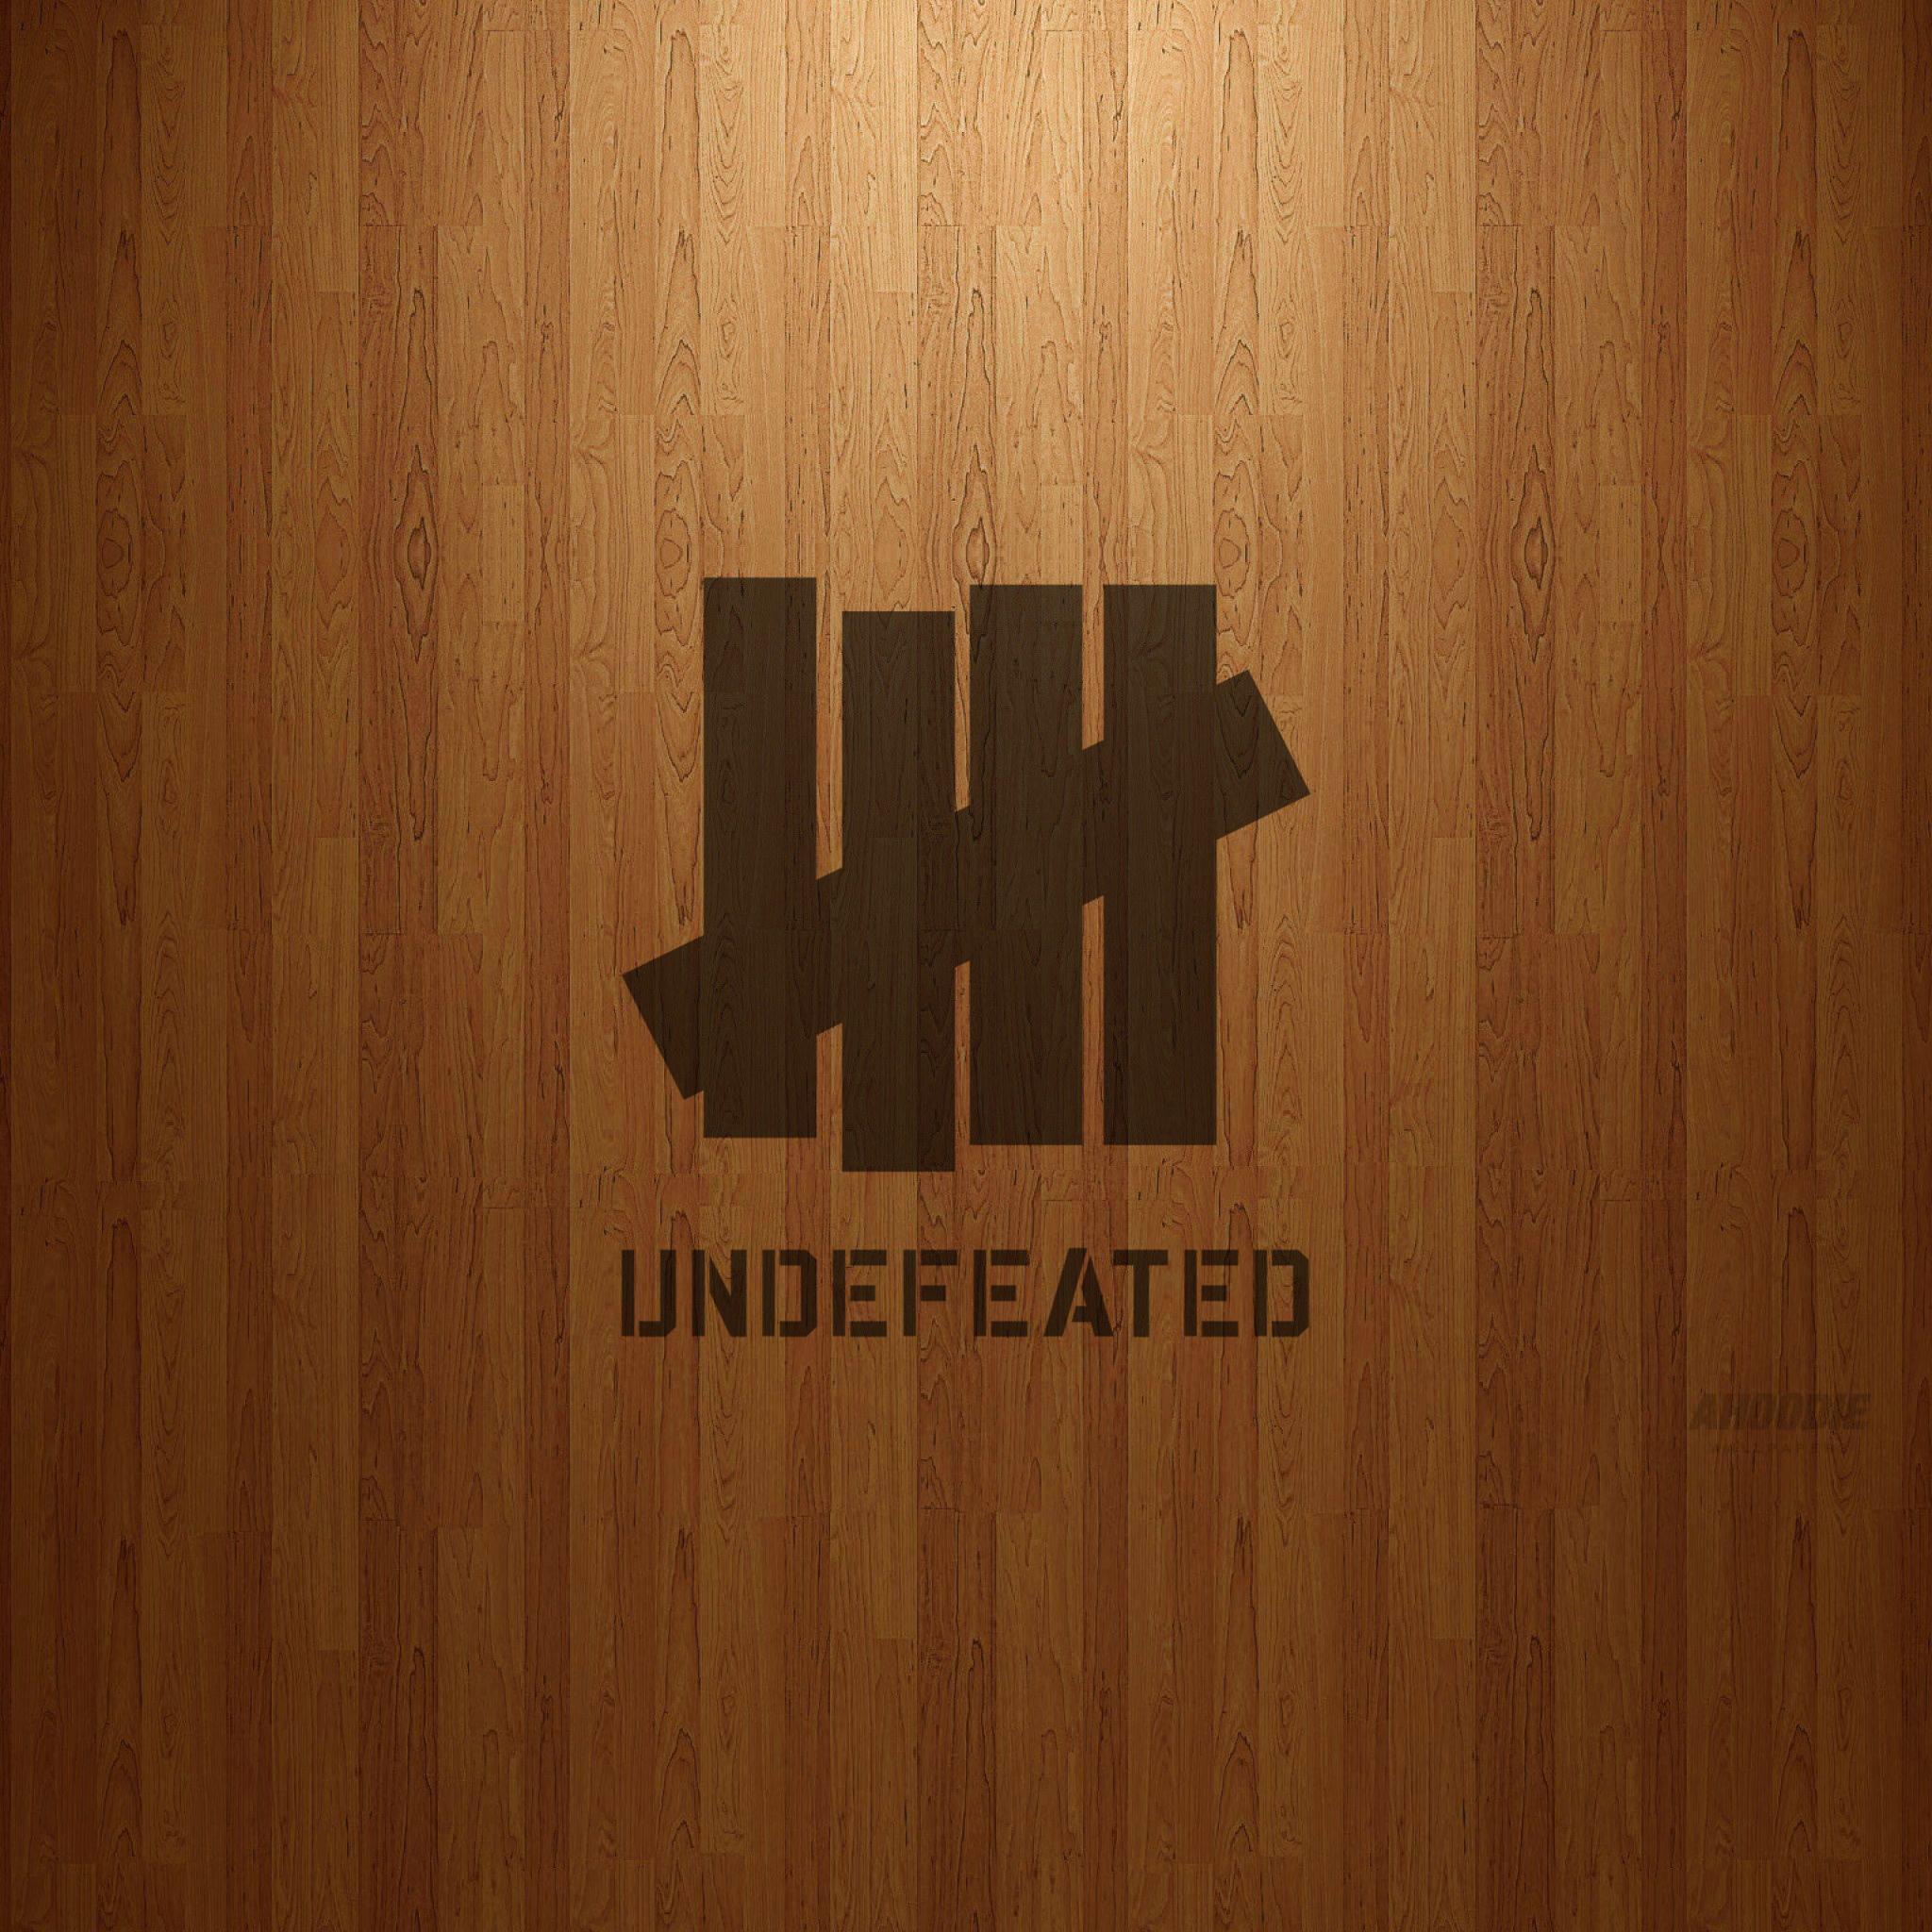 Download Undefeated Wallpaper Gallery